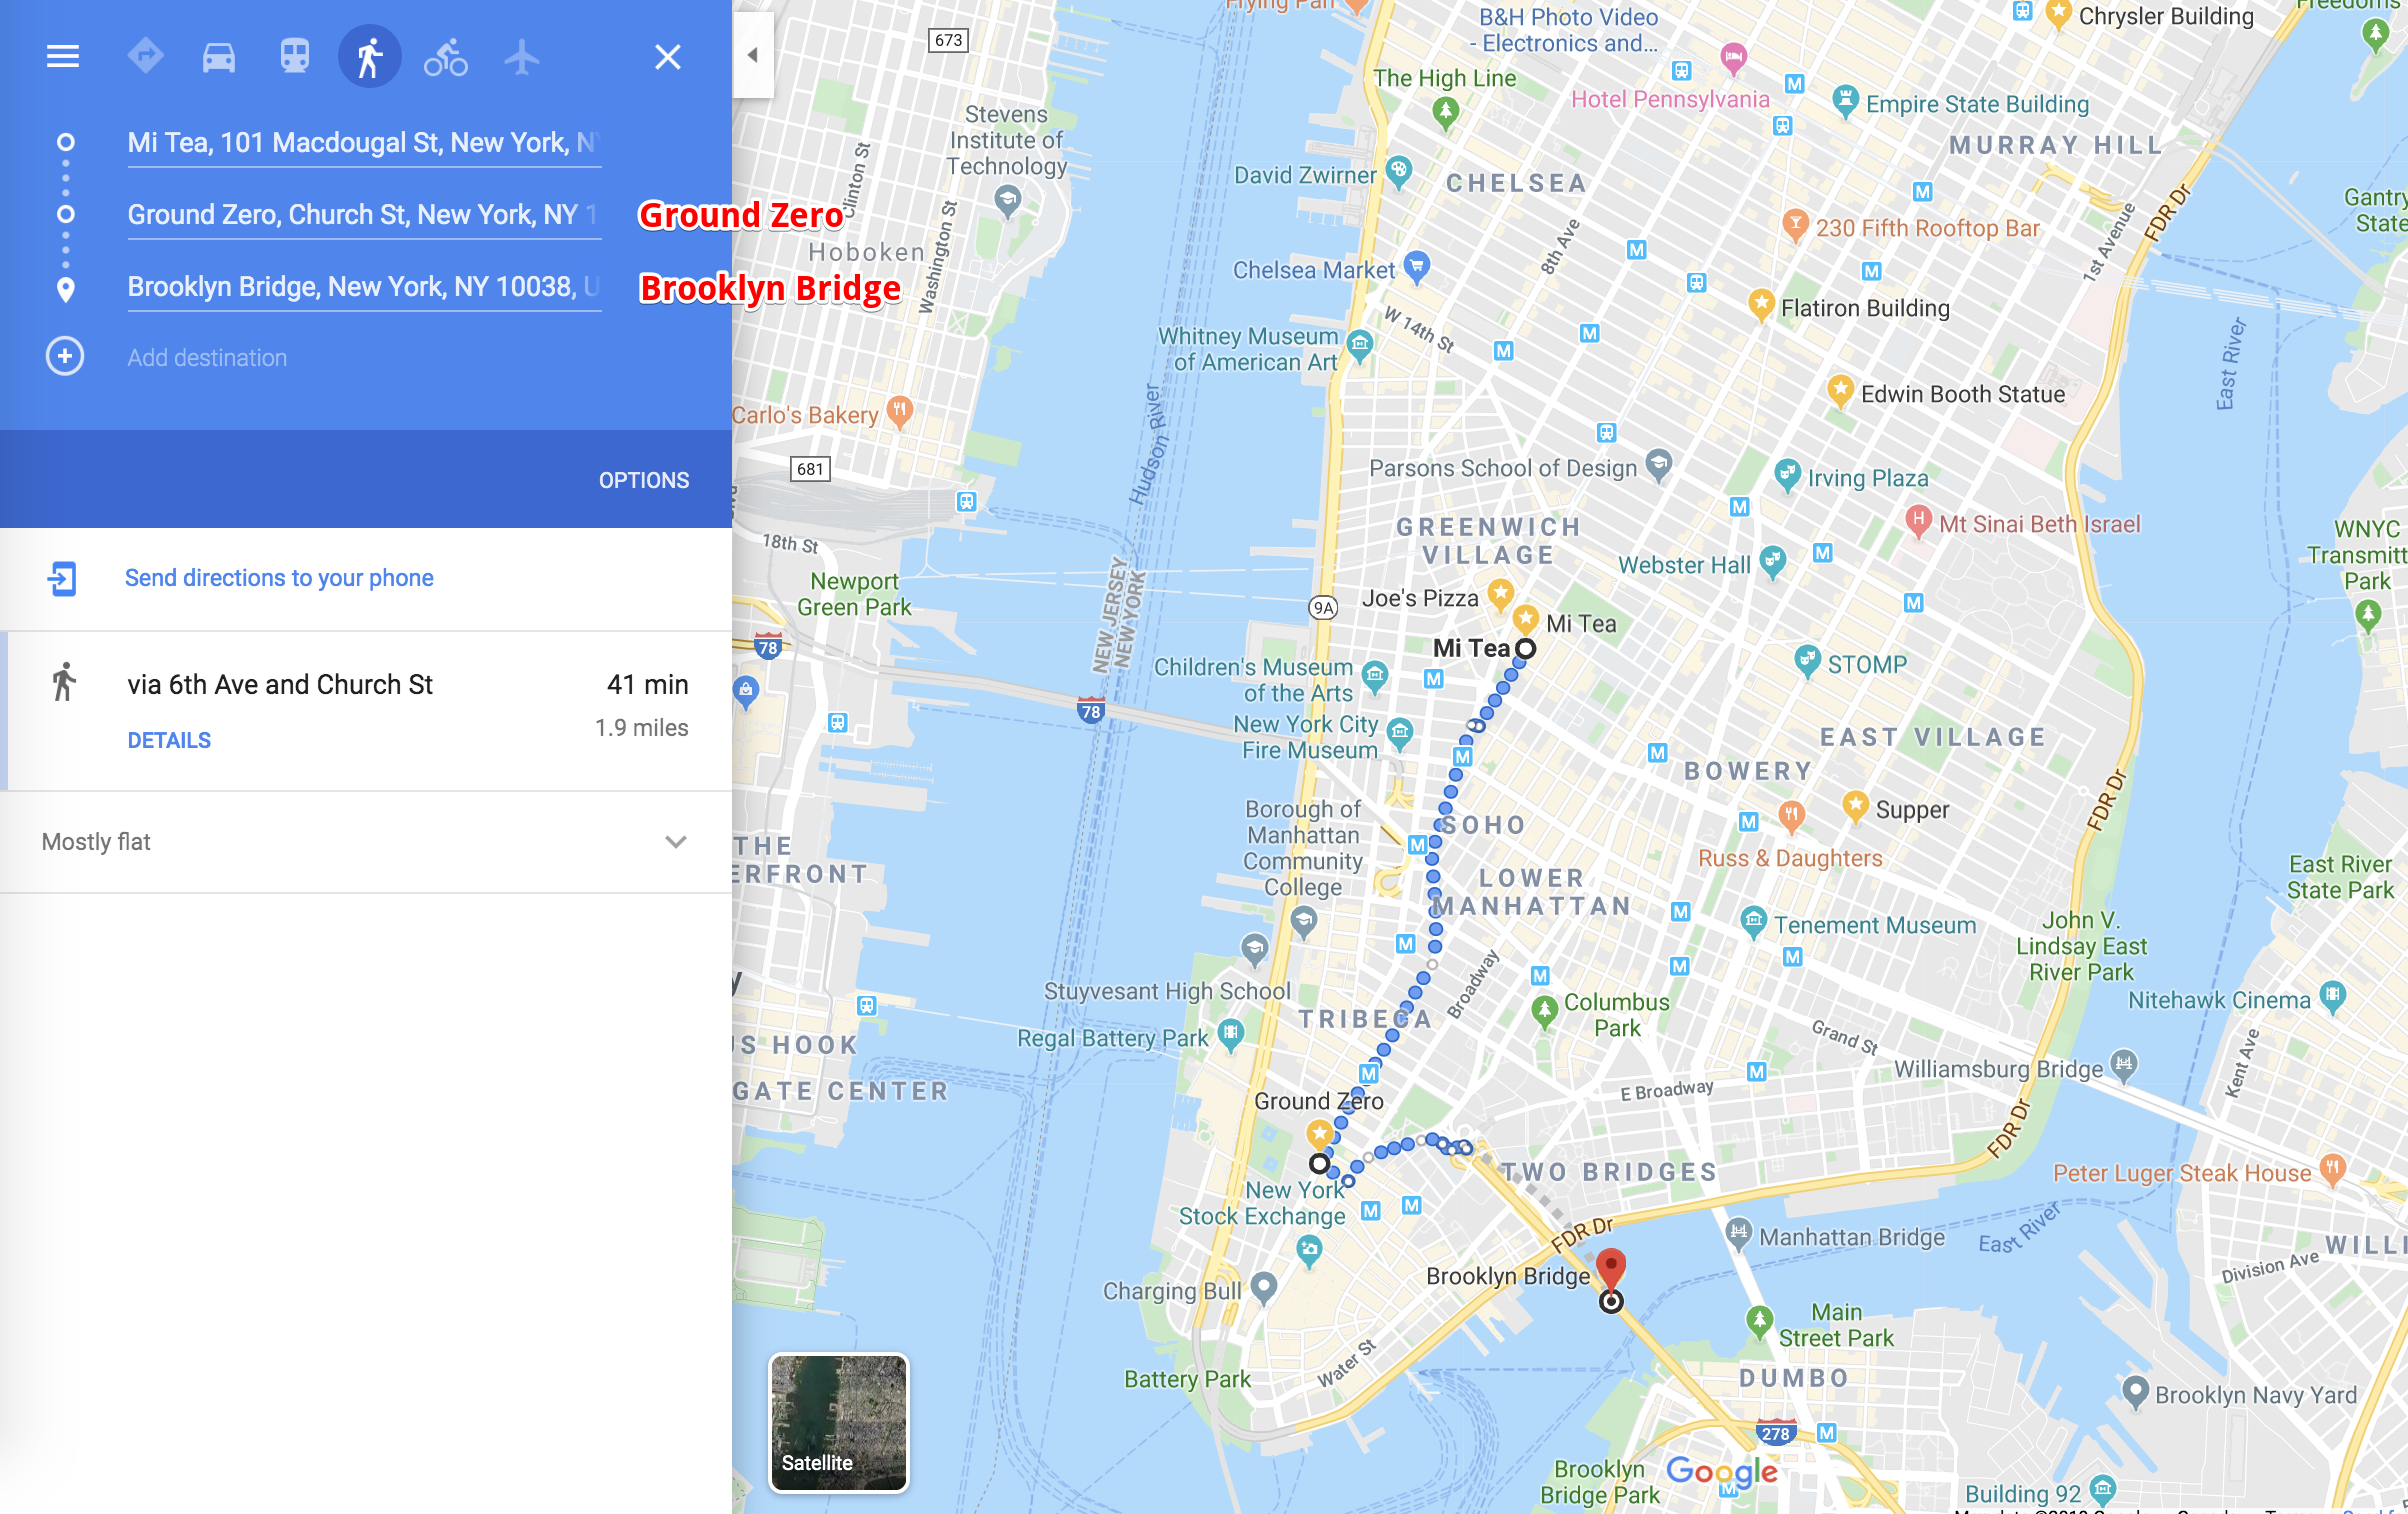 After your little lunch break at Joe's Pizza, continue on and finish off the route at Ground Zero and the Brooklyn Bridge.